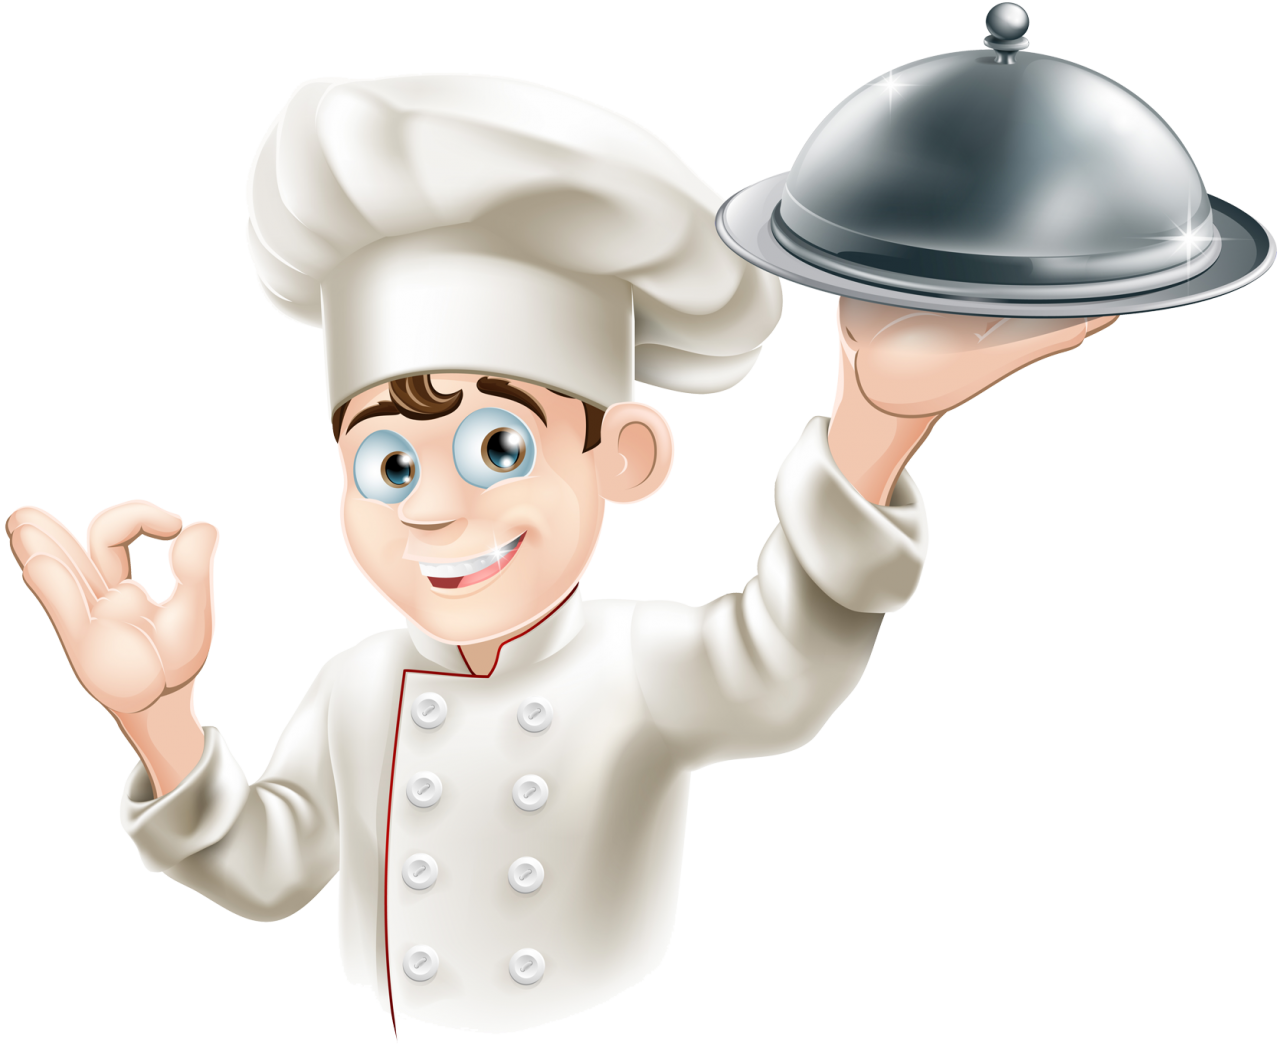 Male Chef PNG Image in 2020 Kids clipart, Chefs hat